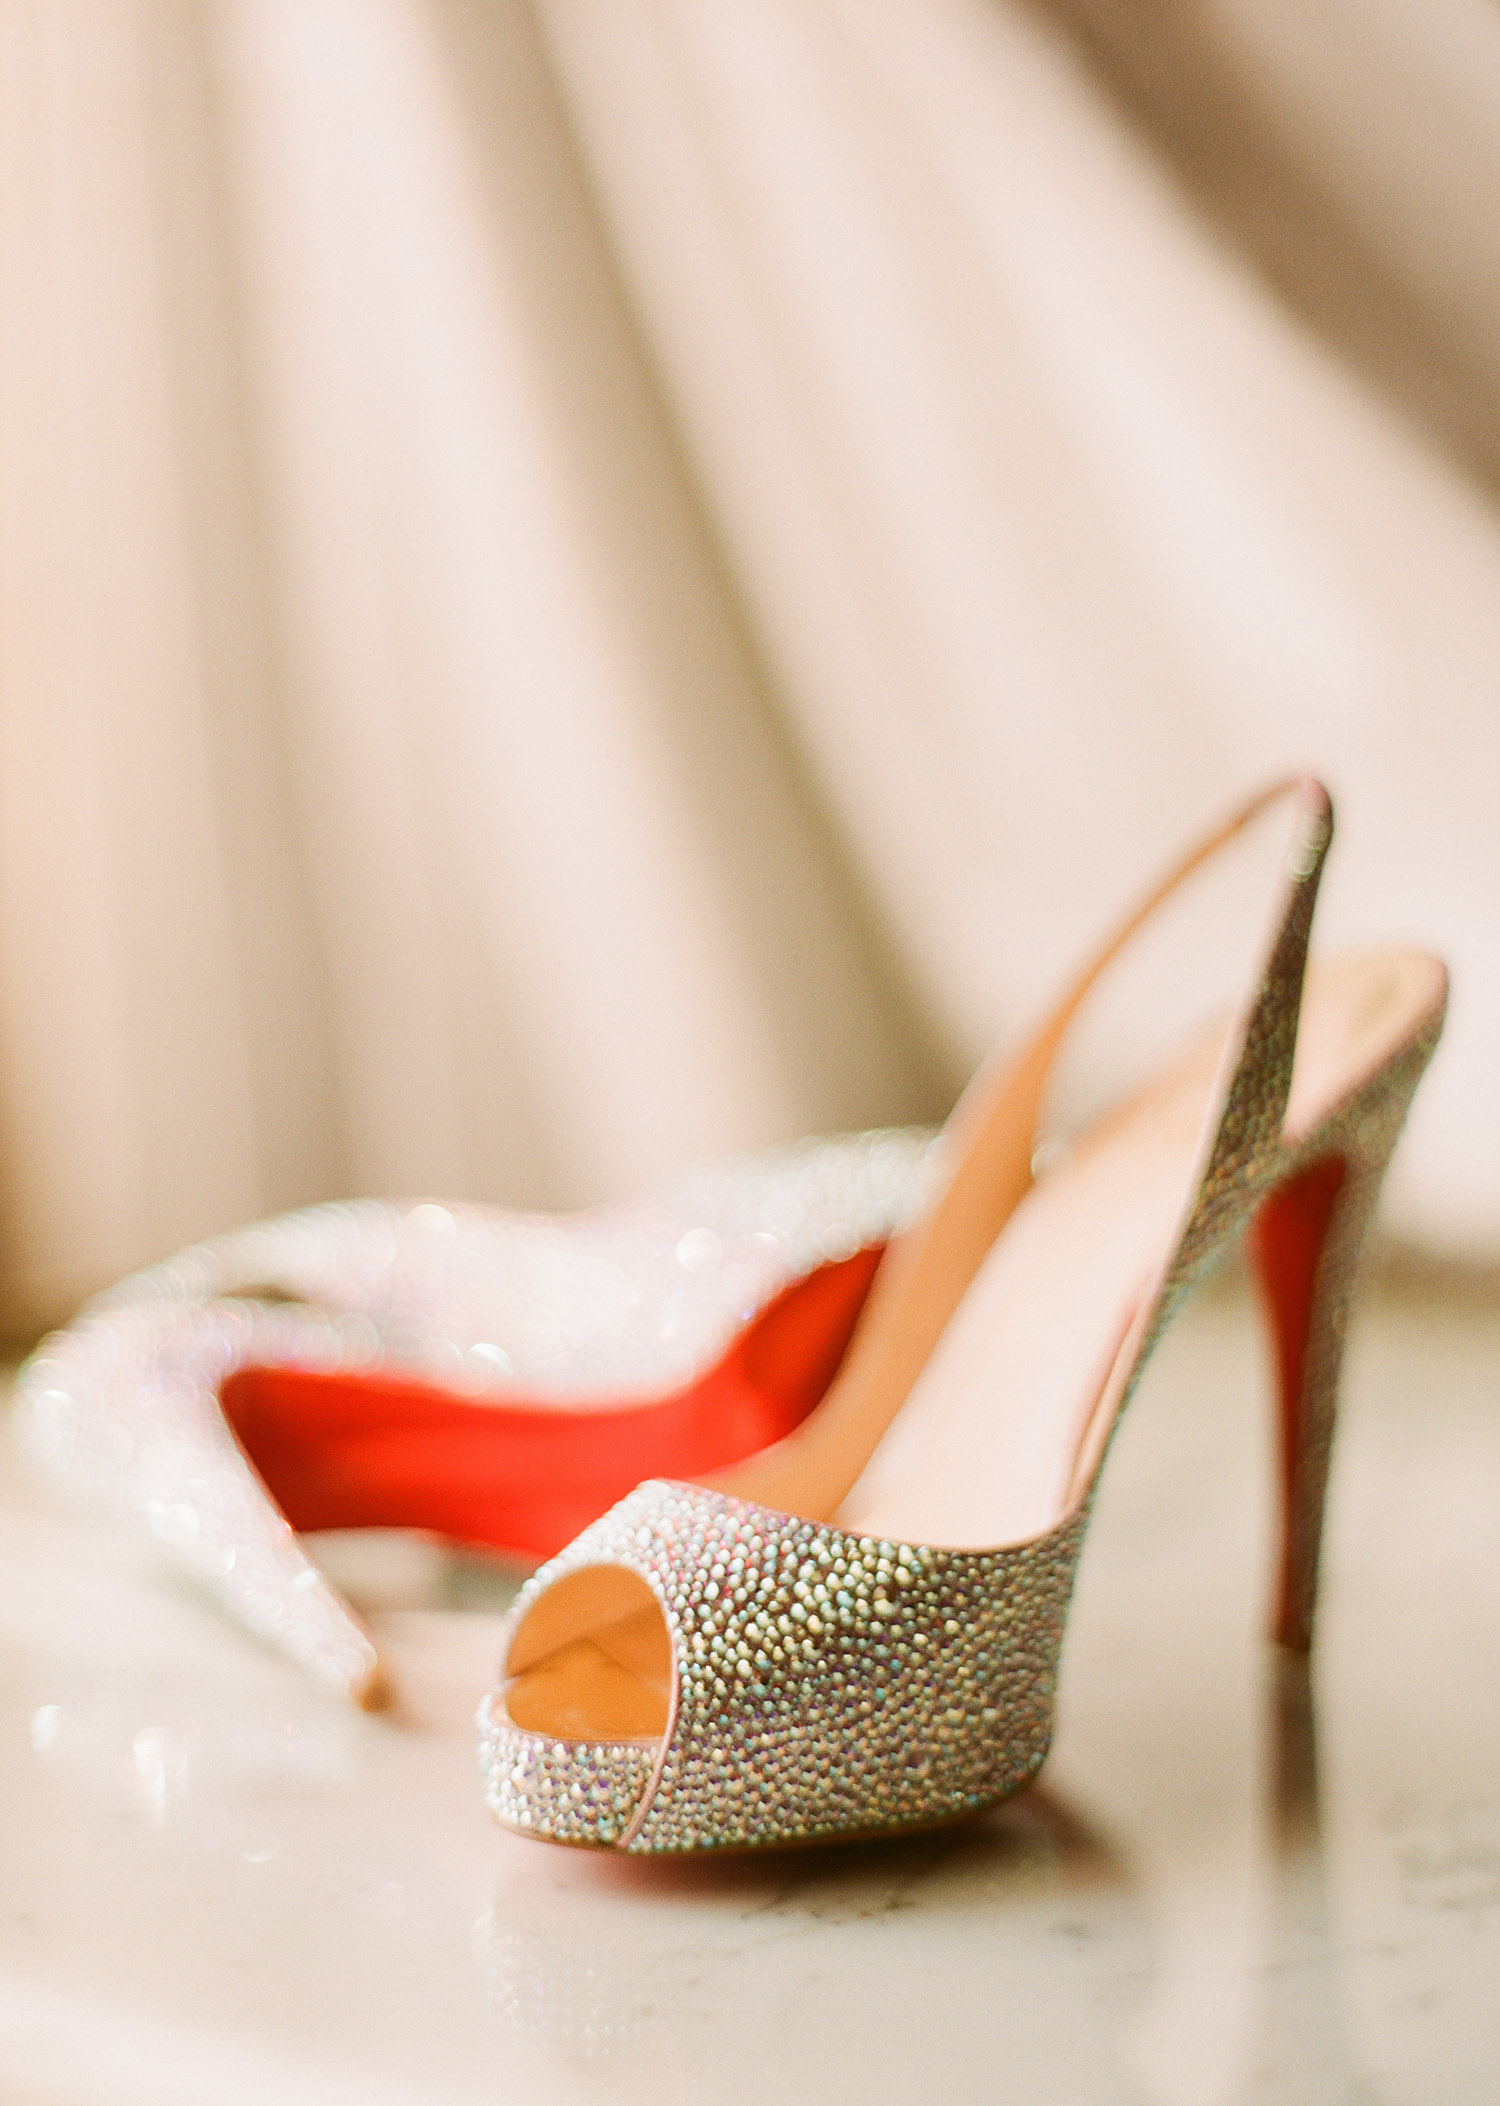 top destination wedding photographer photographs green bay packer Bryan Bulaga and abbie mumpower's wedding and her Christian Louboutin shoes for her wedding.